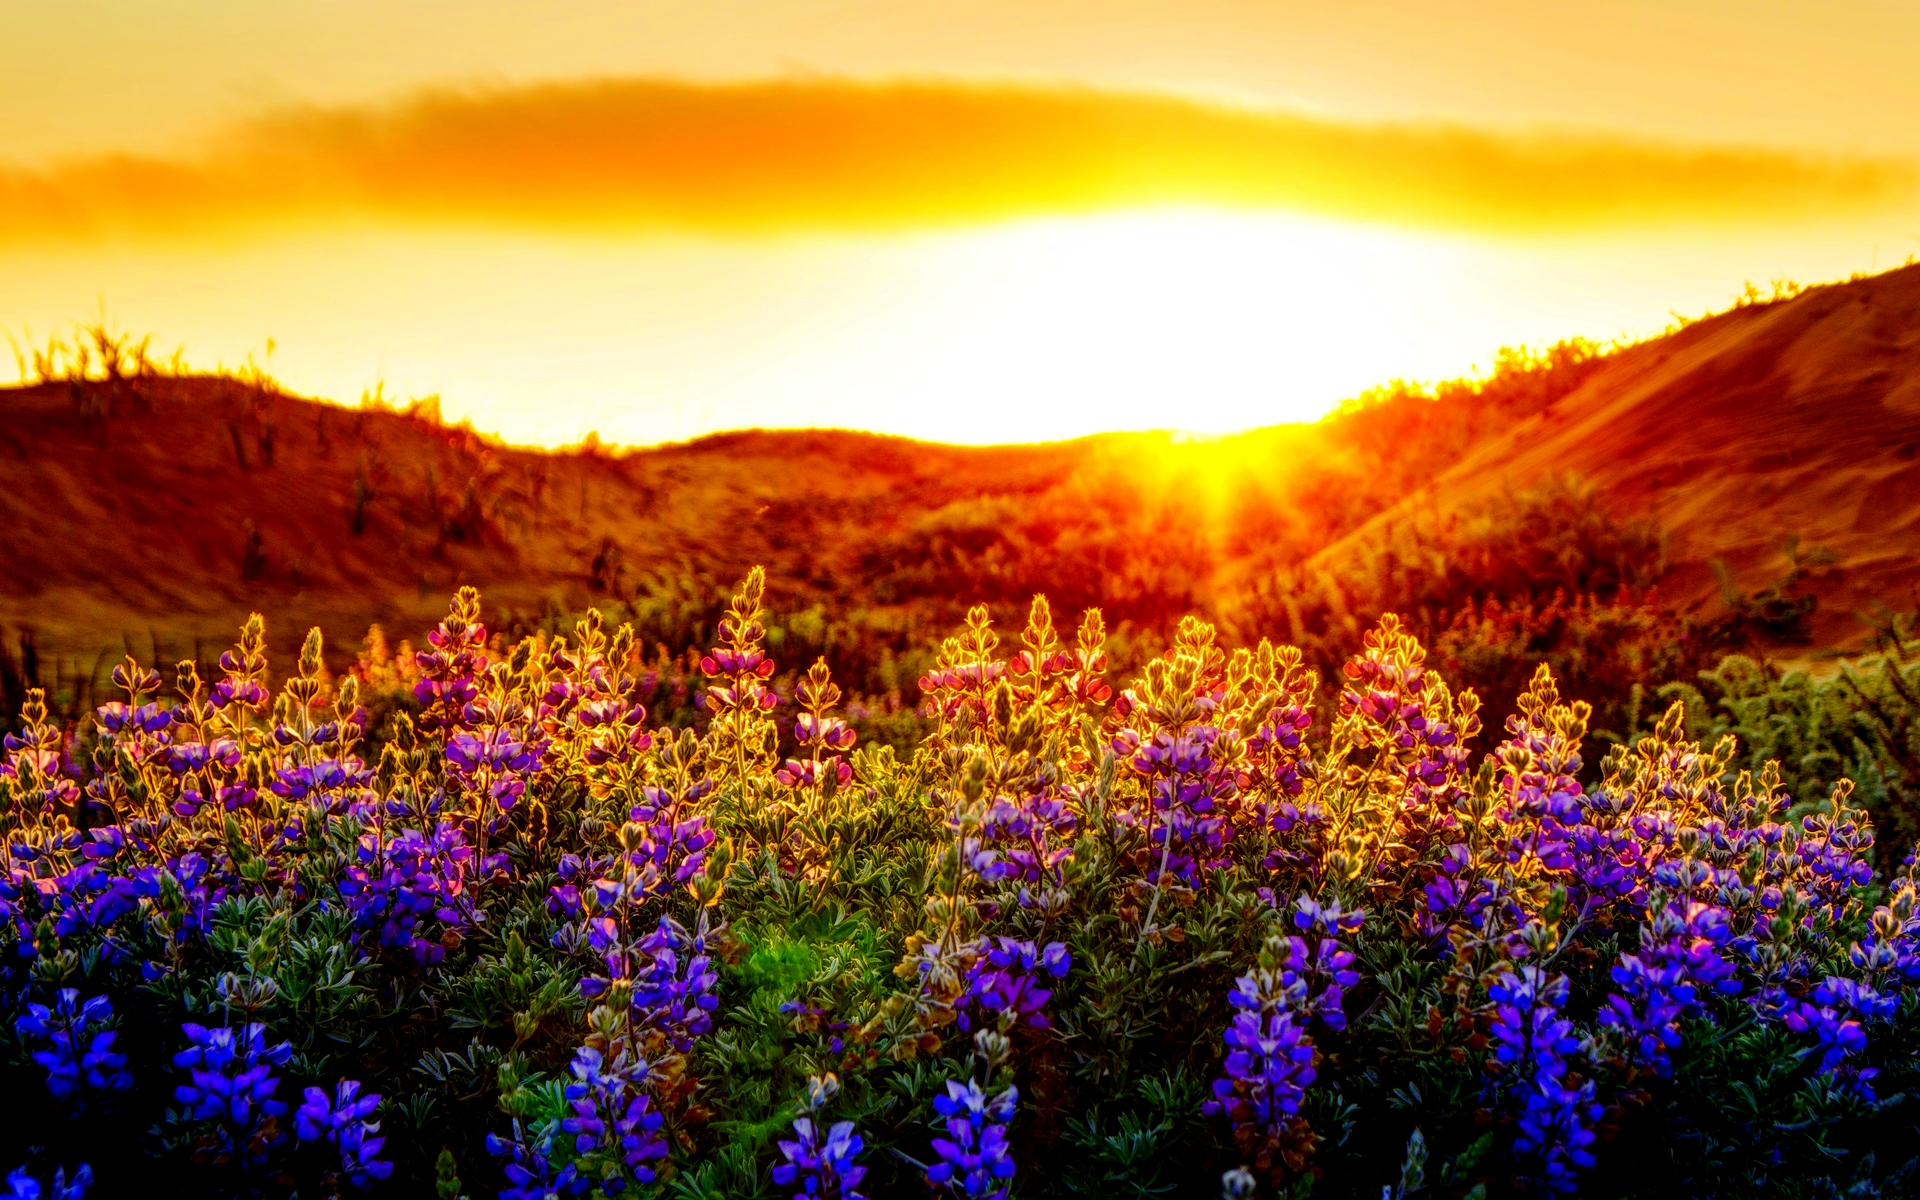 Related Wallpaper for Sunset Summer Wallpaper Backgrounds 1920x1200